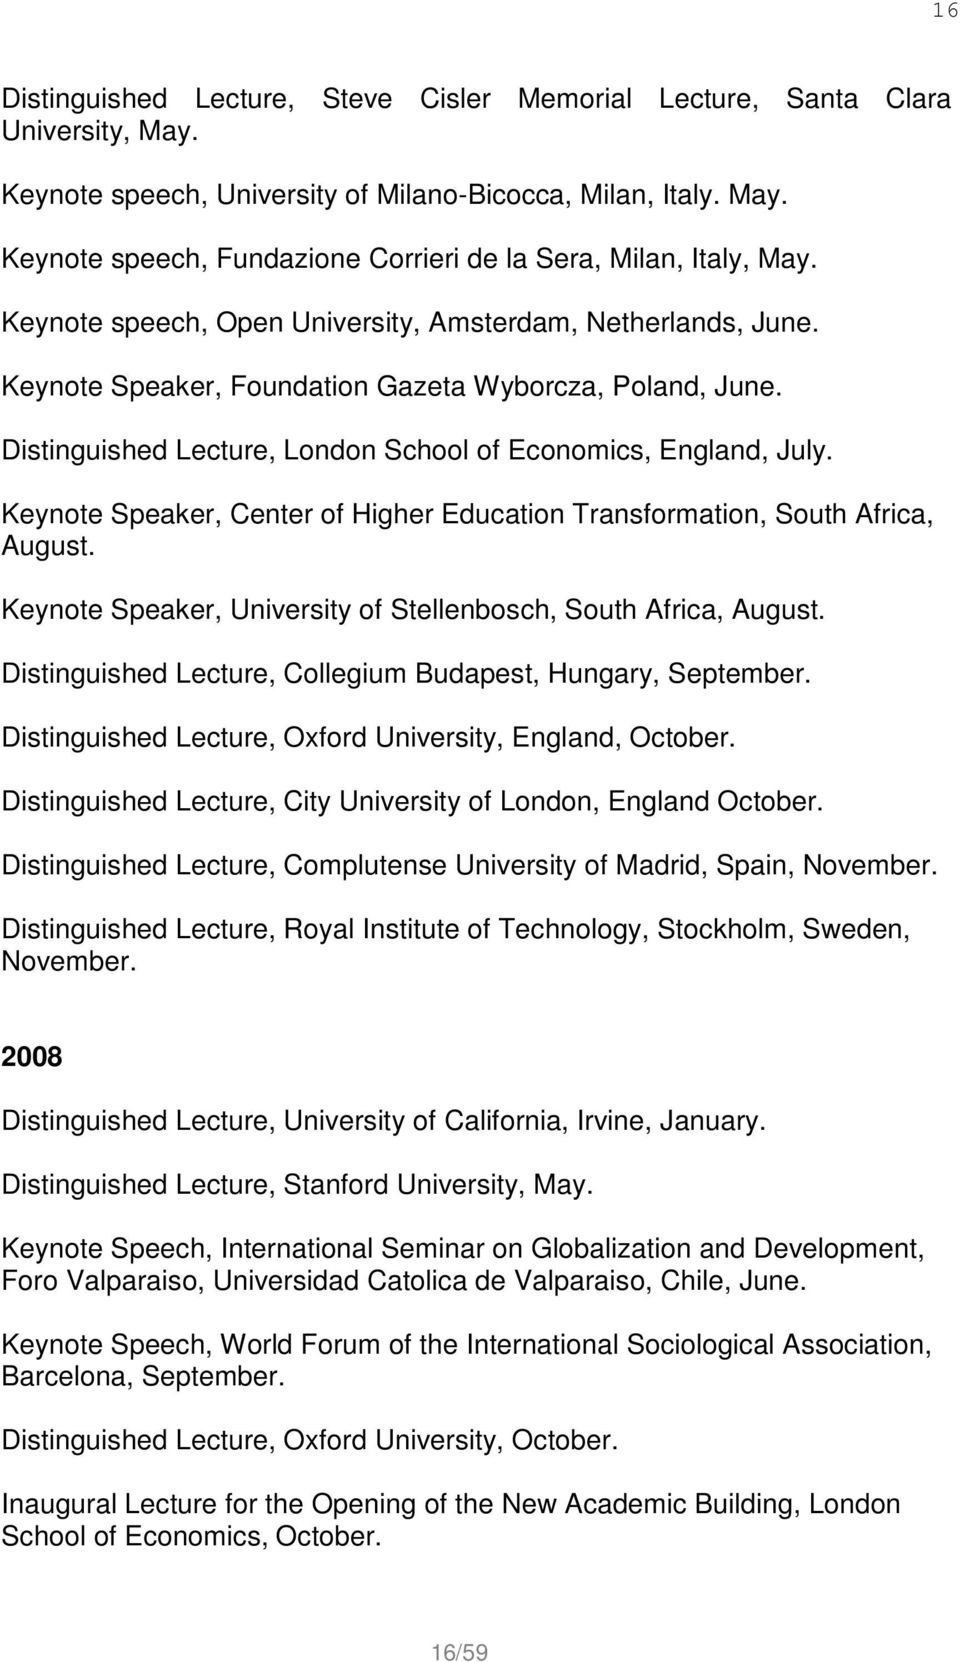 Keynote Speaker, Center of Higher Education Transformation, South Africa, August. Keynote Speaker, University of Stellenbosch, South Africa, August.